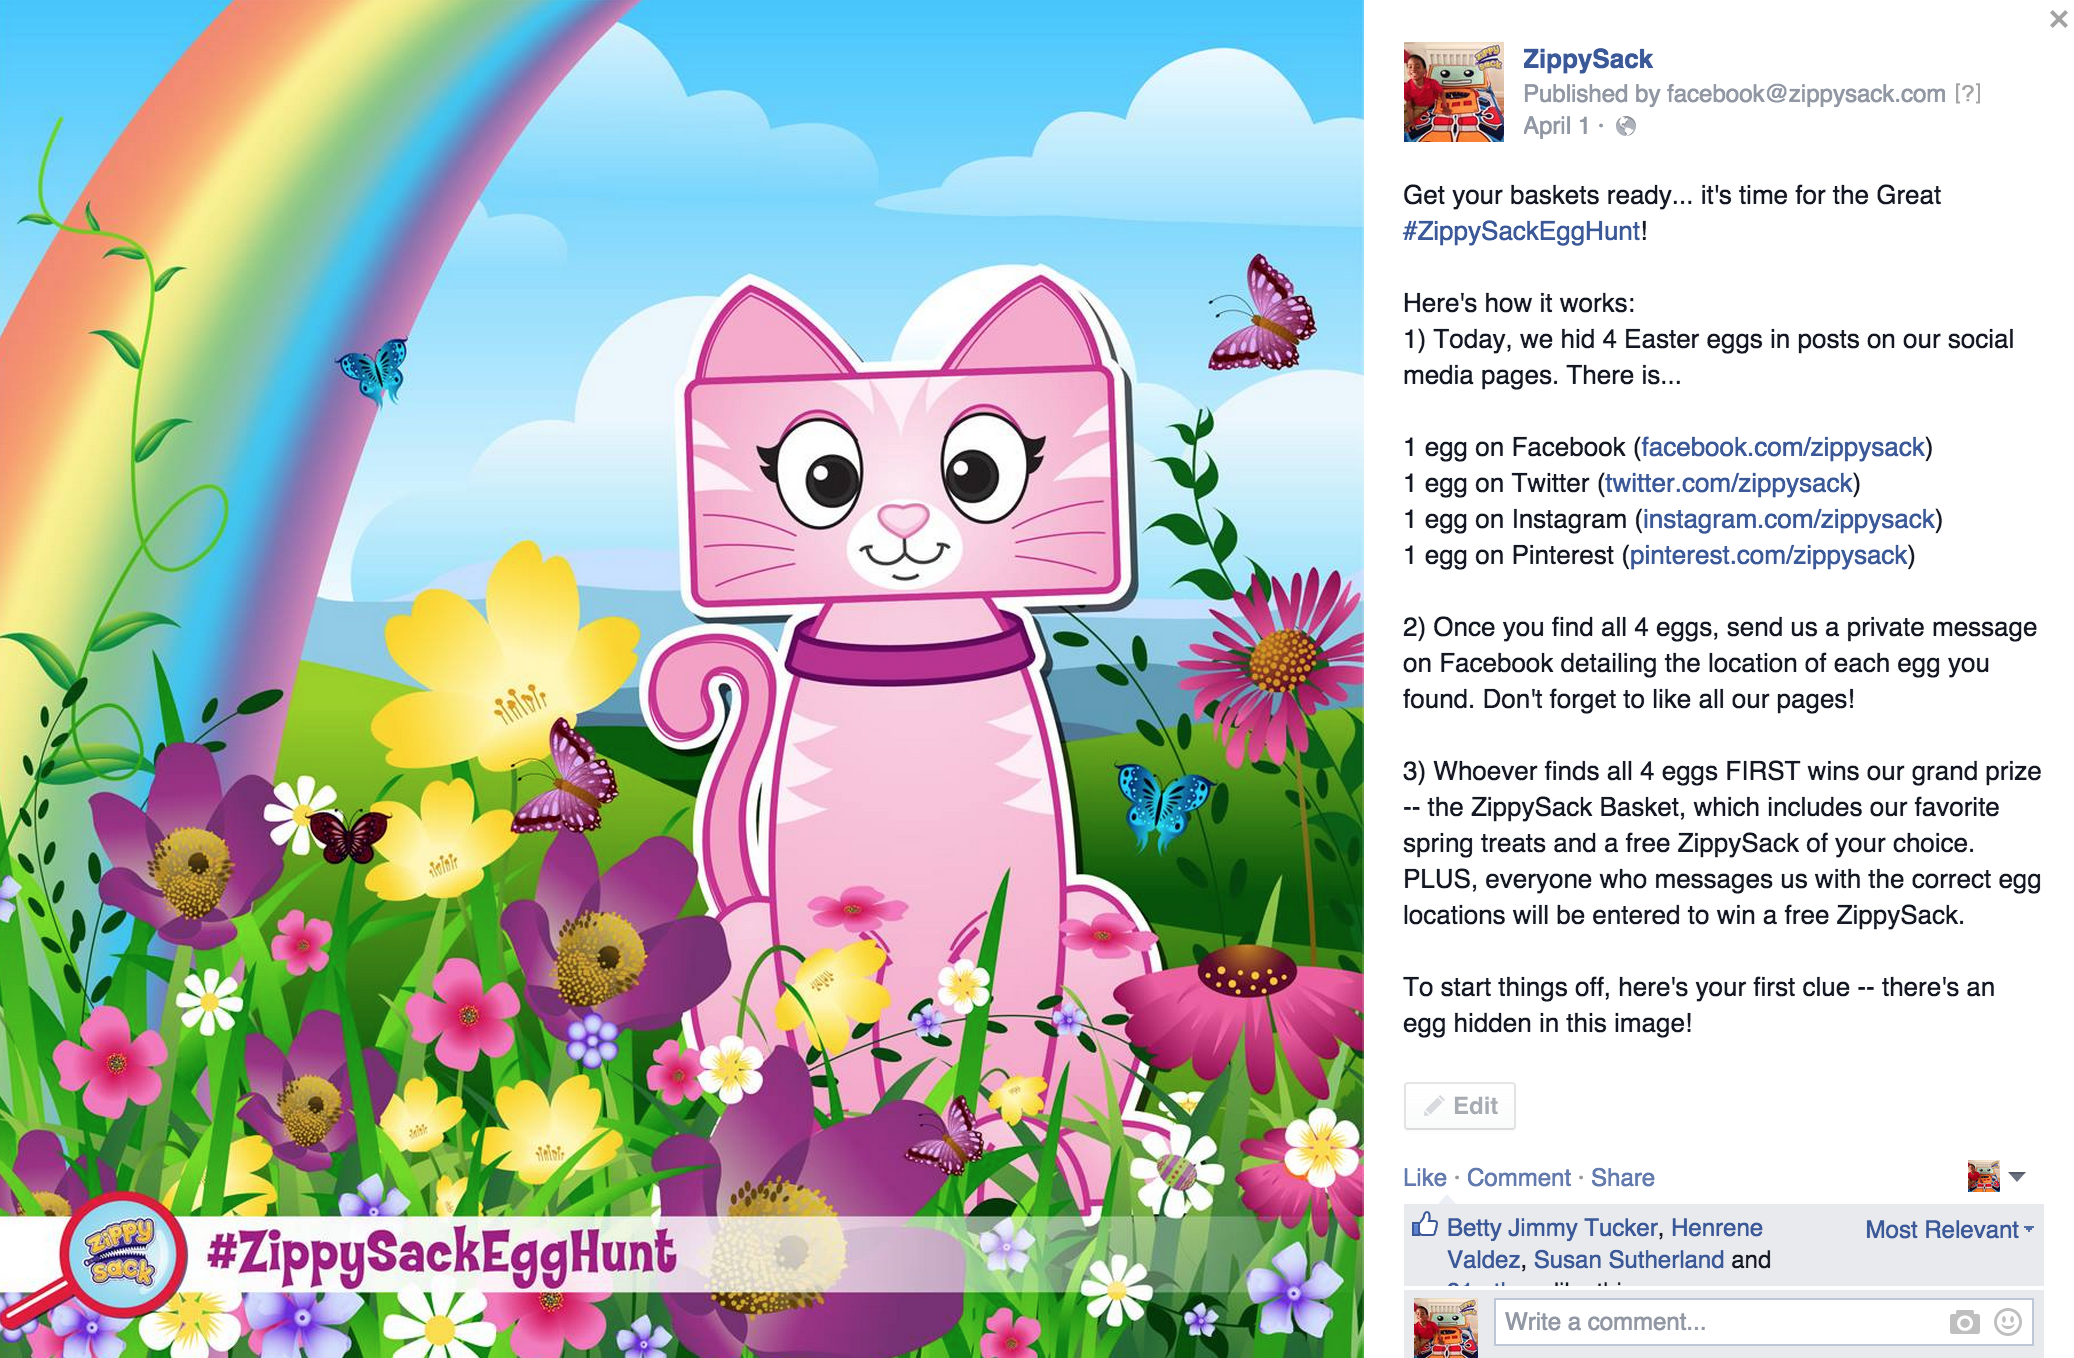 Facebook: The Great ZippySack Egg Hunt